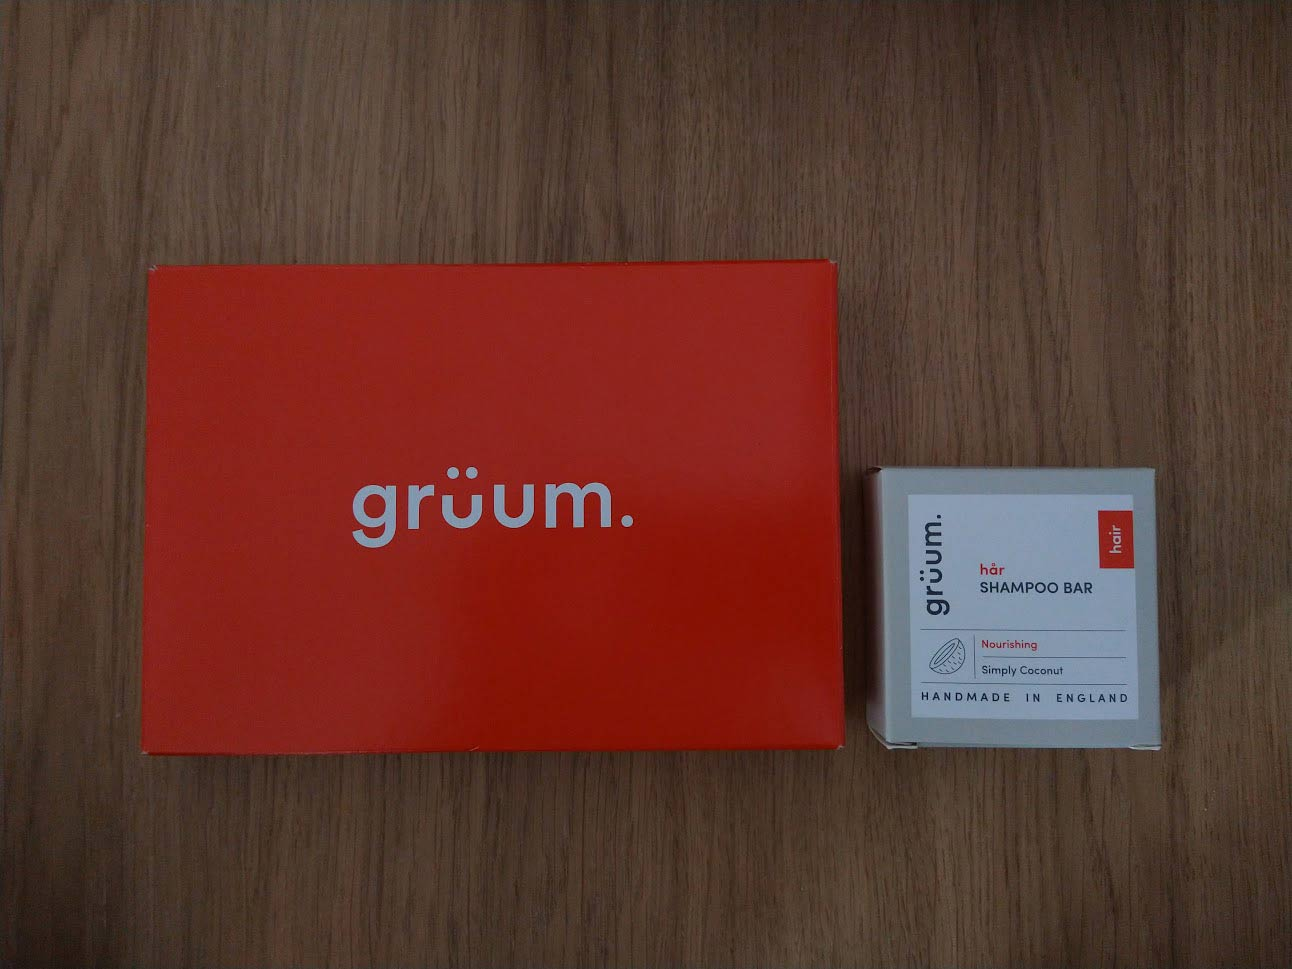 Grüum packaging: a red cardboard box beside the smaller square box that contains the shampoo bar.